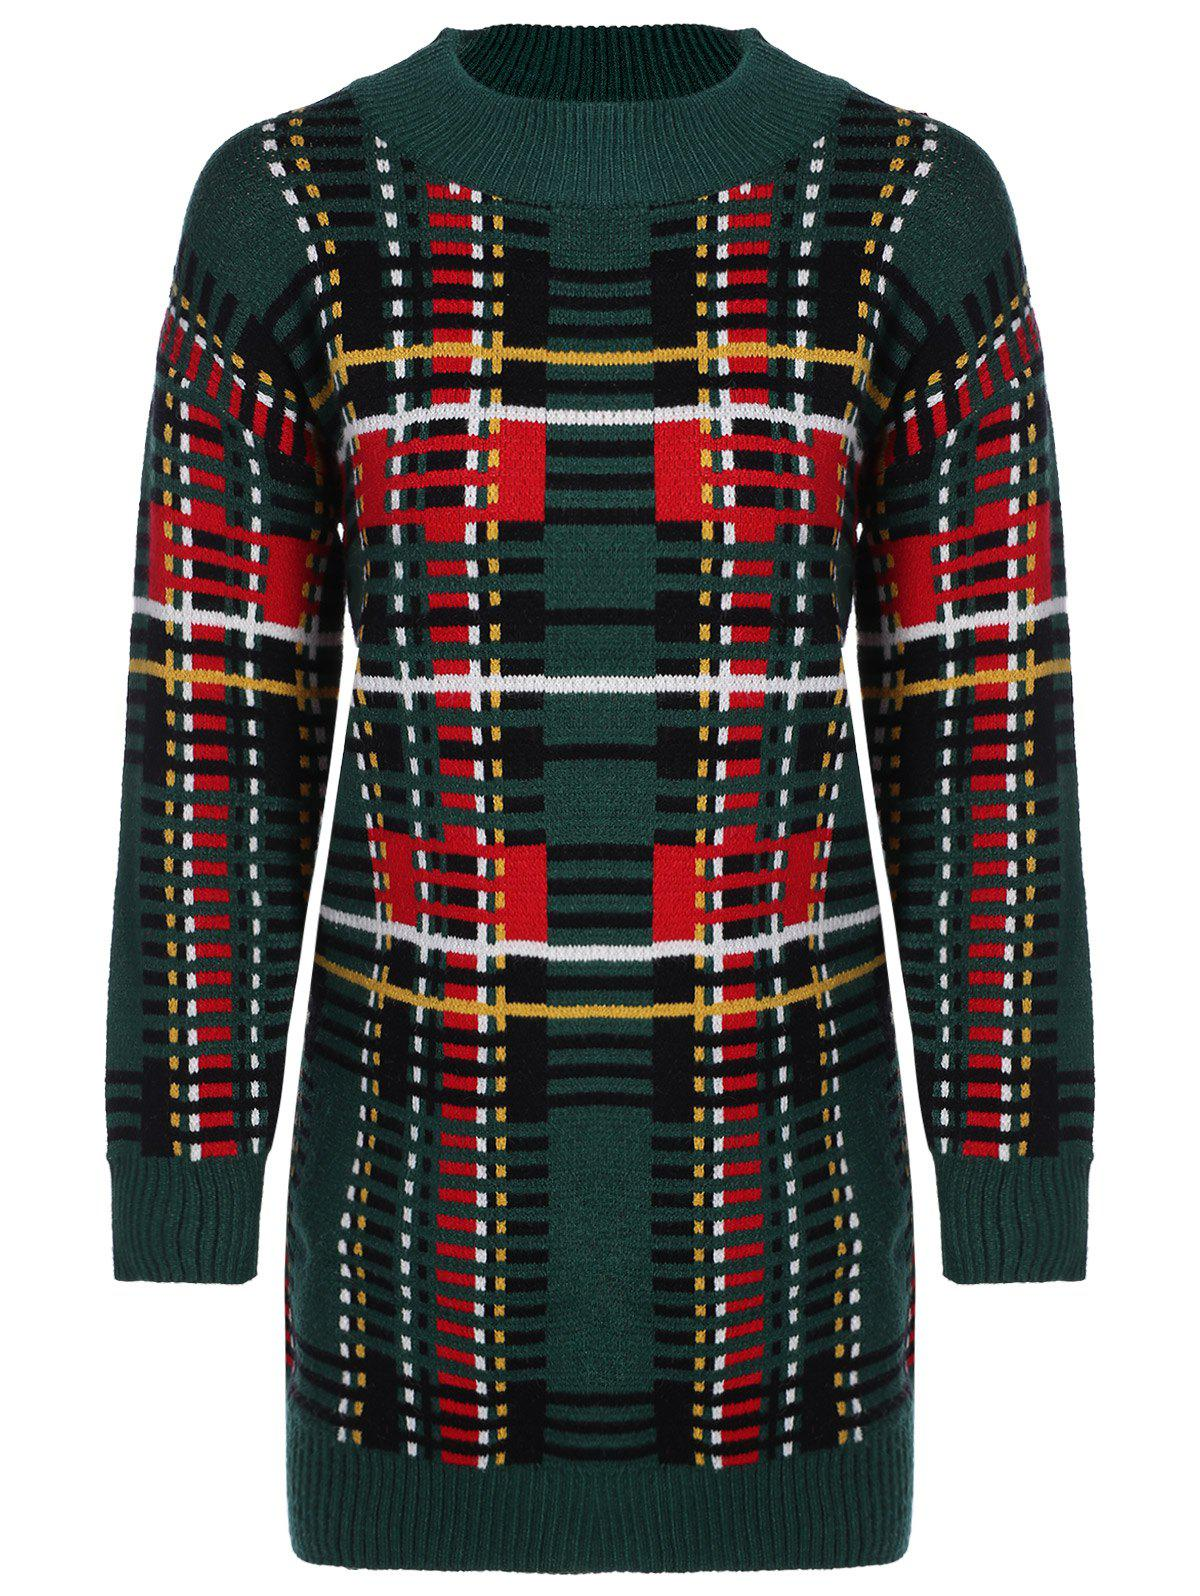 Jewel Neck Color Block Sweater Dress - GREEN ONE SIZE